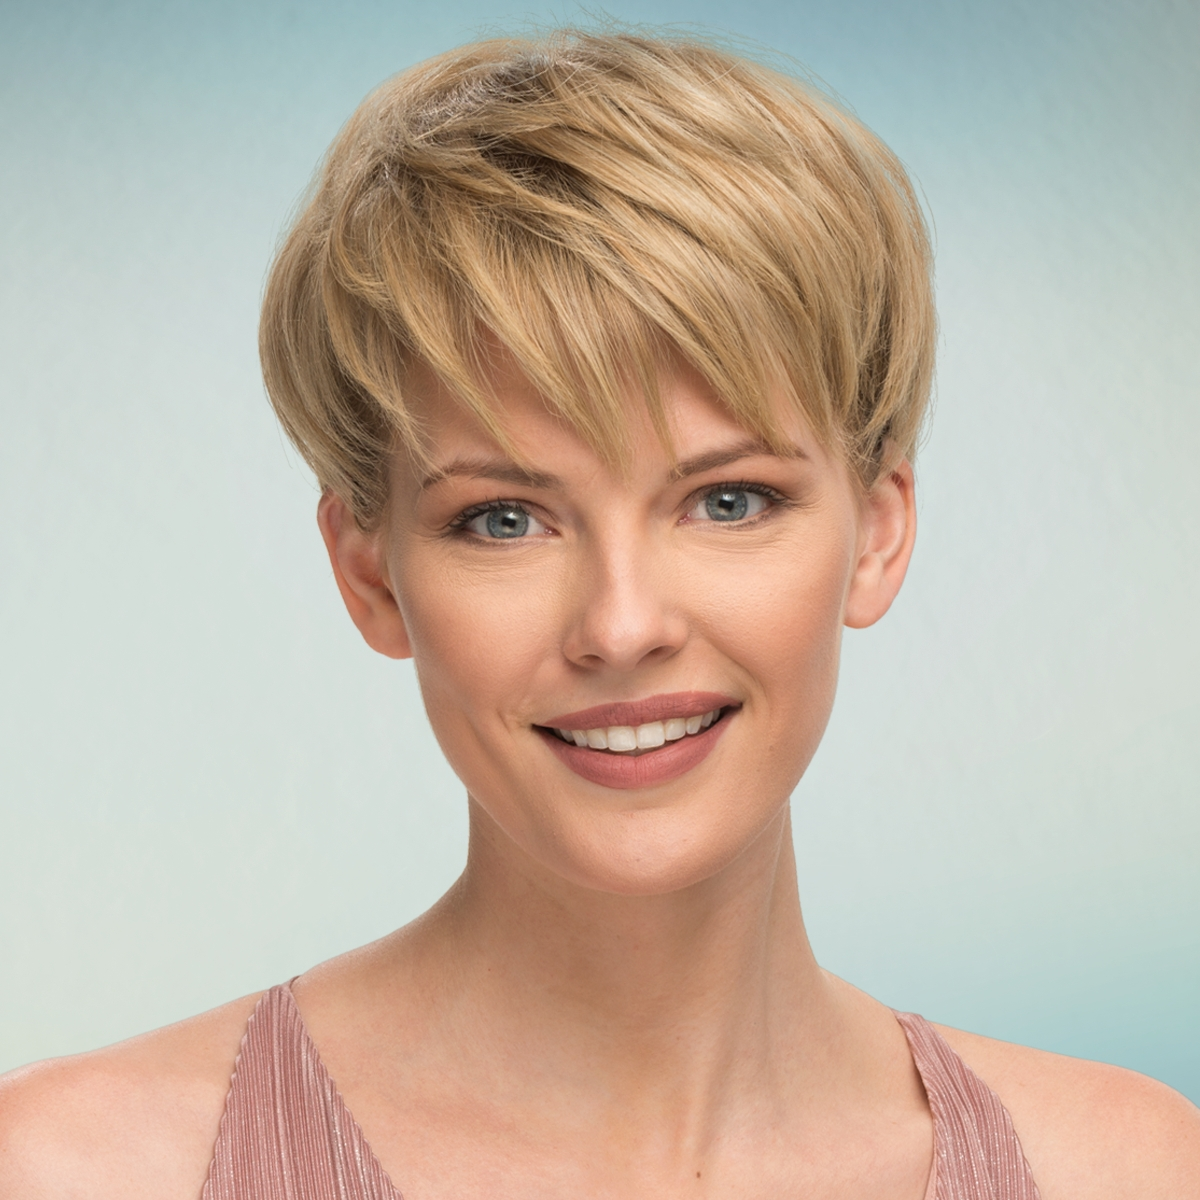 Current Contemporary Pixie Hairstyles With The Classic Pixie Haircut Is A Contemporary Hairstyle That's Short (View 12 of 20)